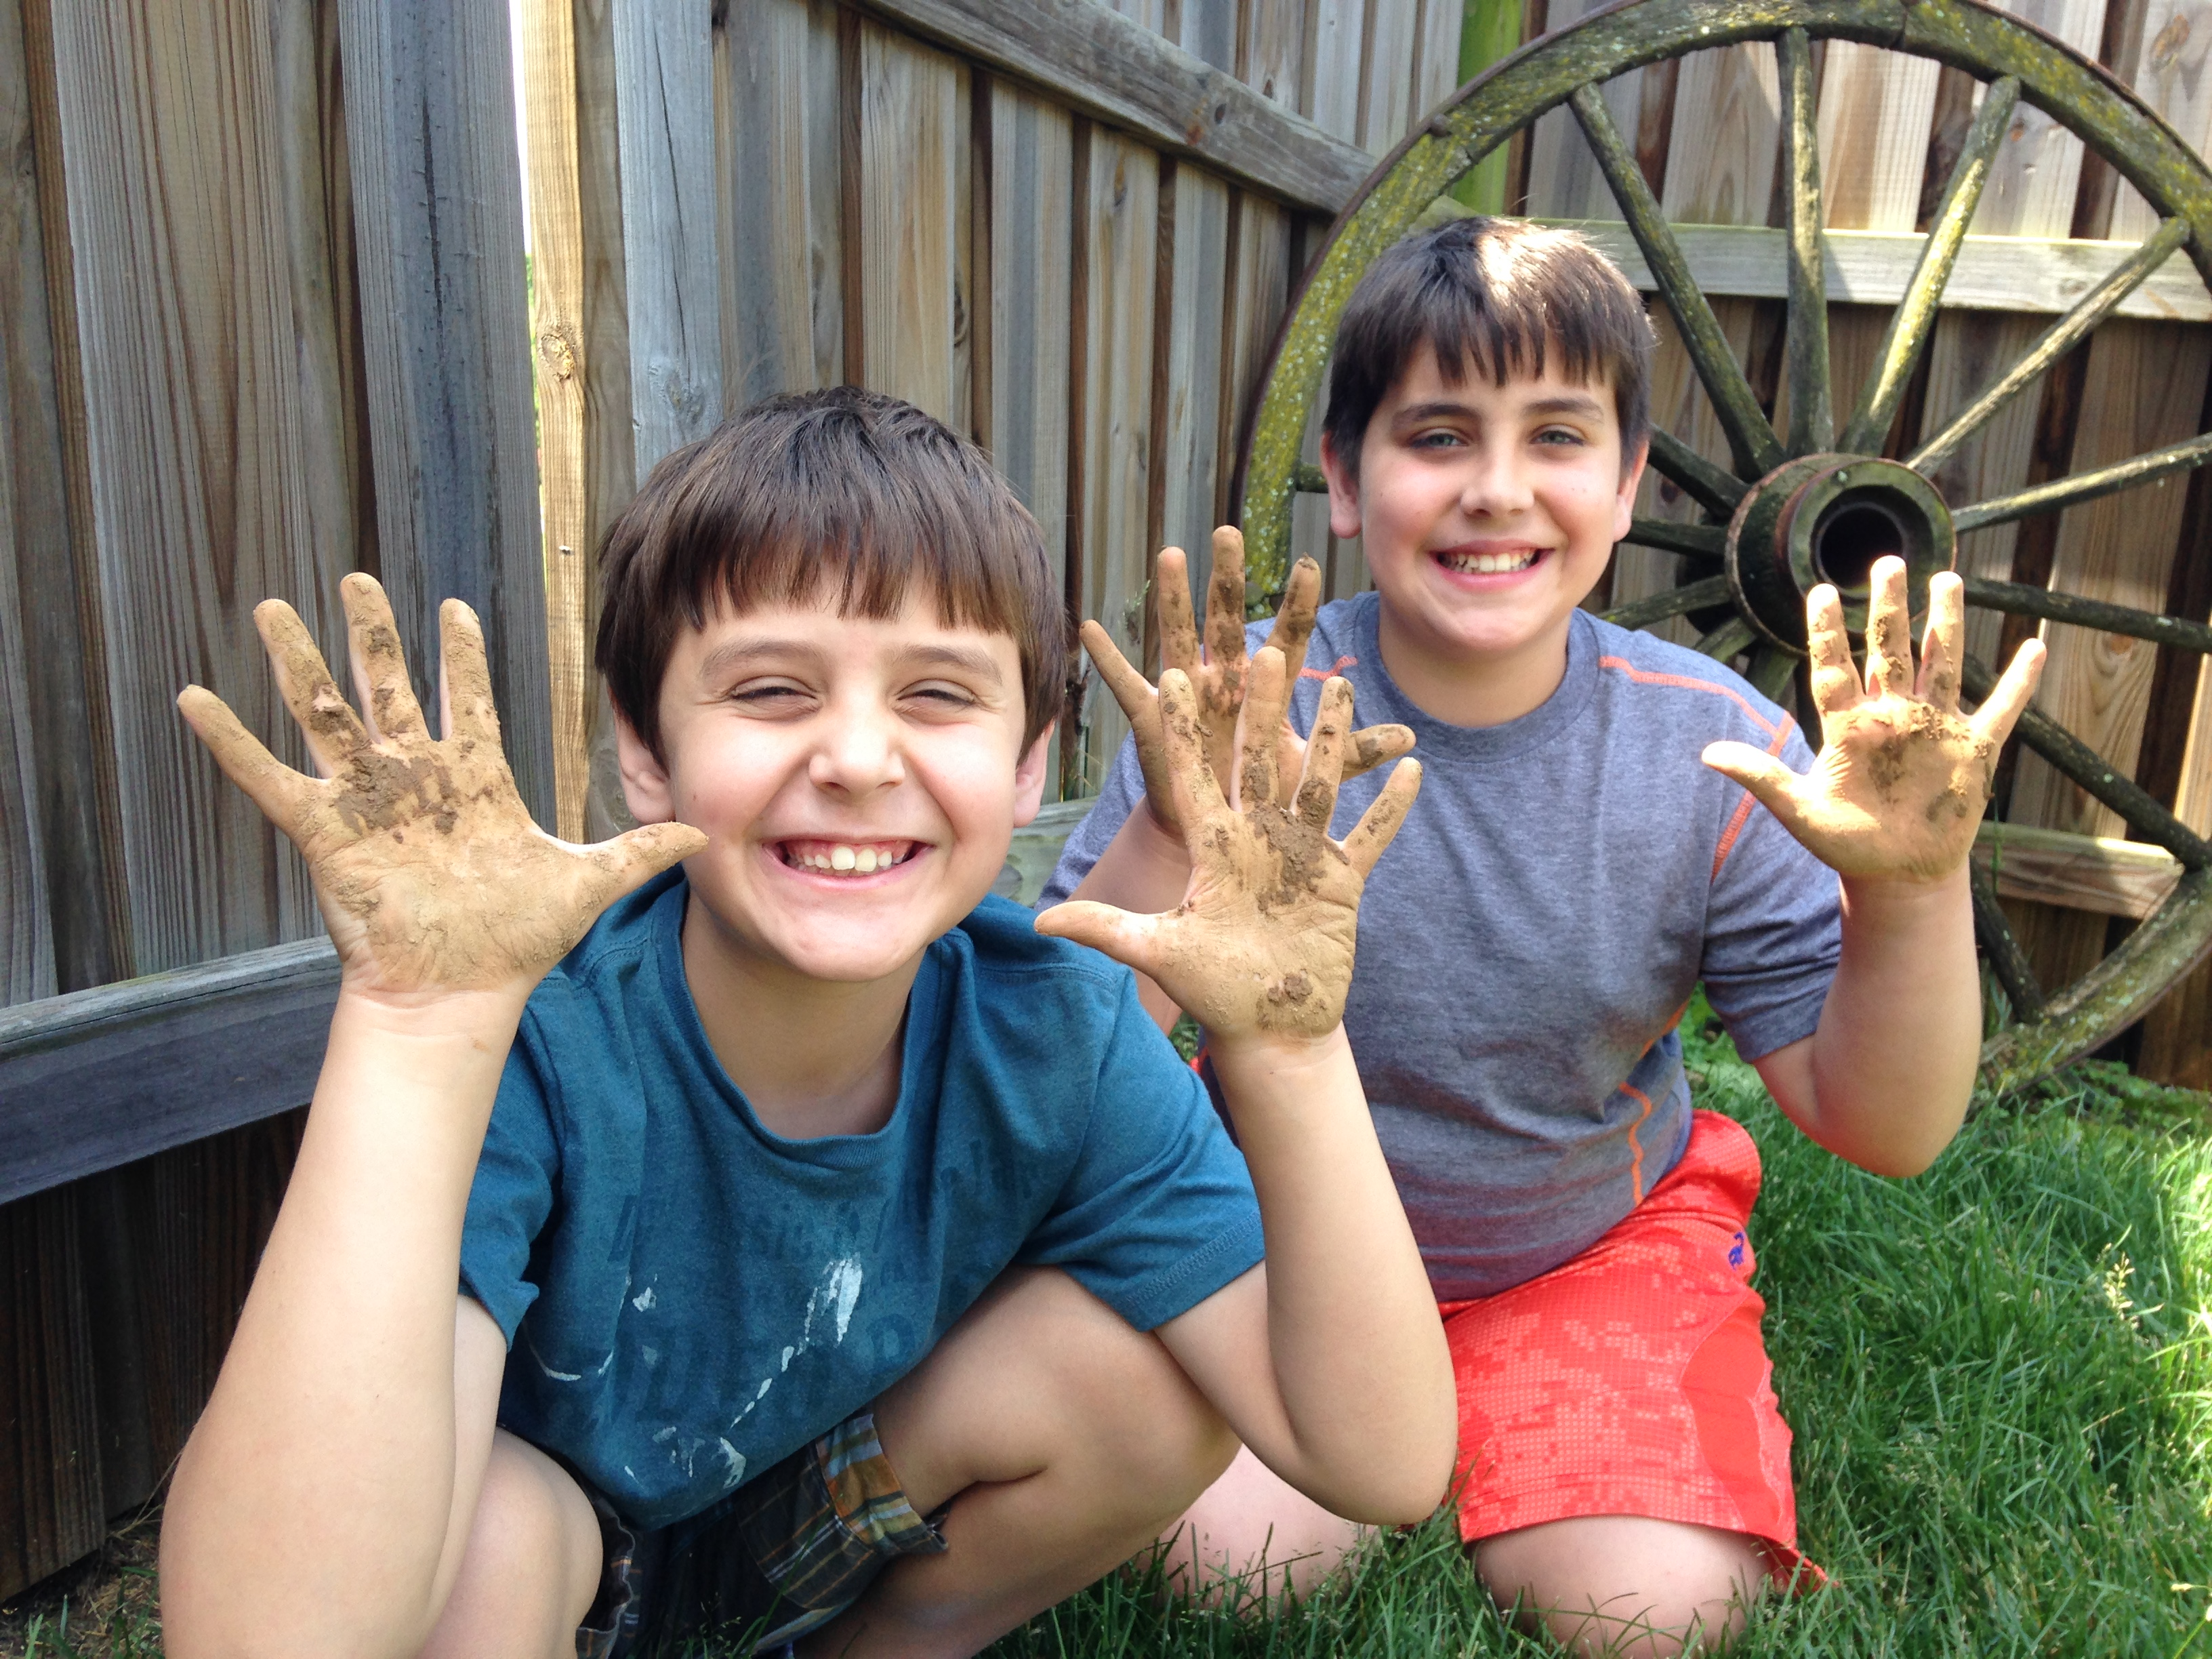 Hey kids, it's summertime, go get your hands dirty!